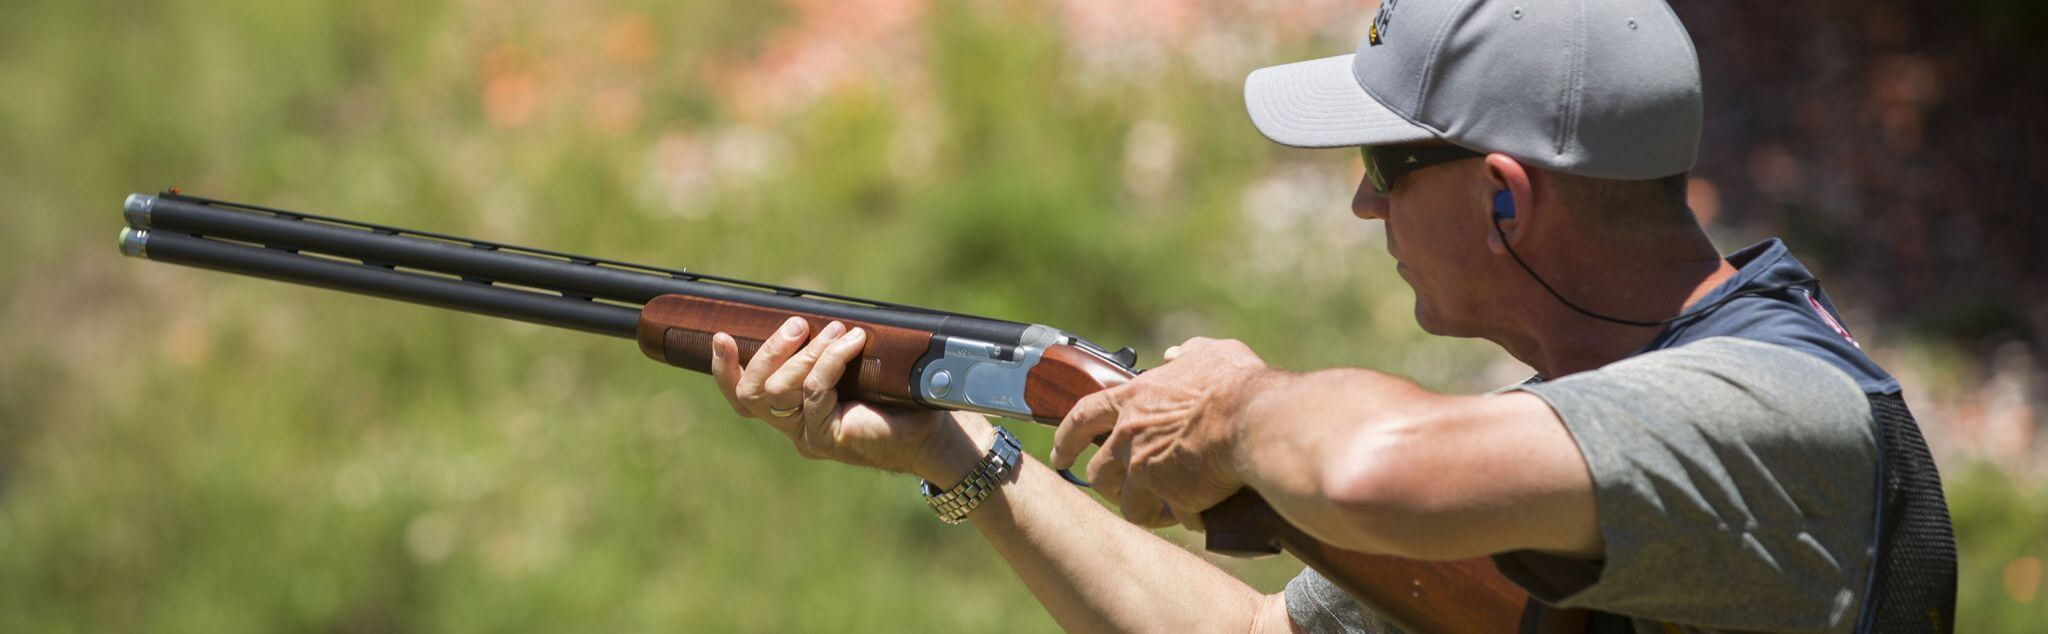 Clay Pigeon Shooting in Hertfordshire